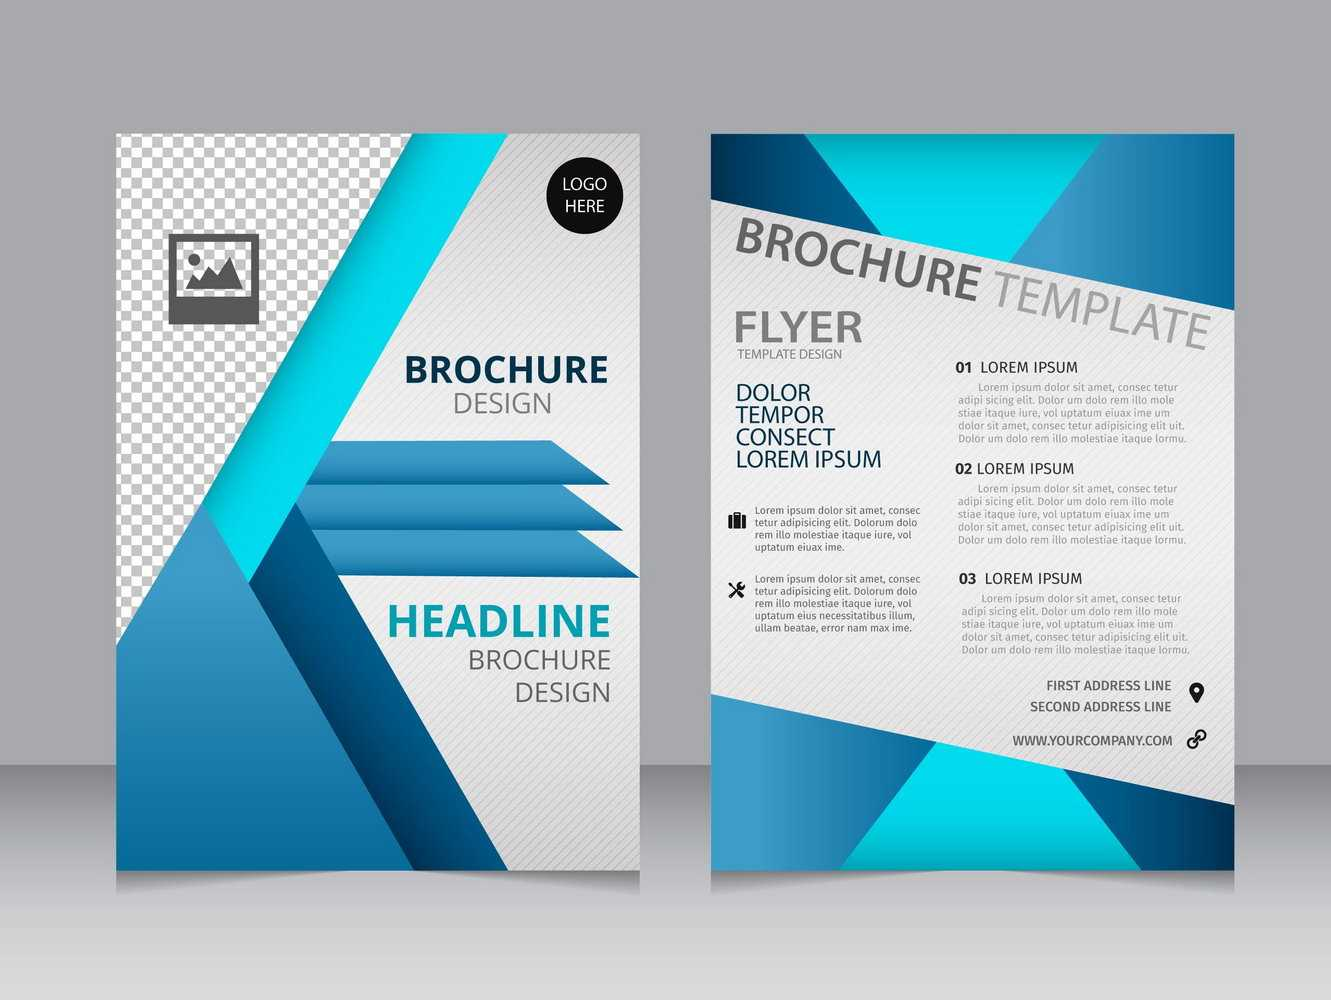 007 Blank Brochure Templates Free Download Word Template Intended For Free Illustrator Brochure Templates Download